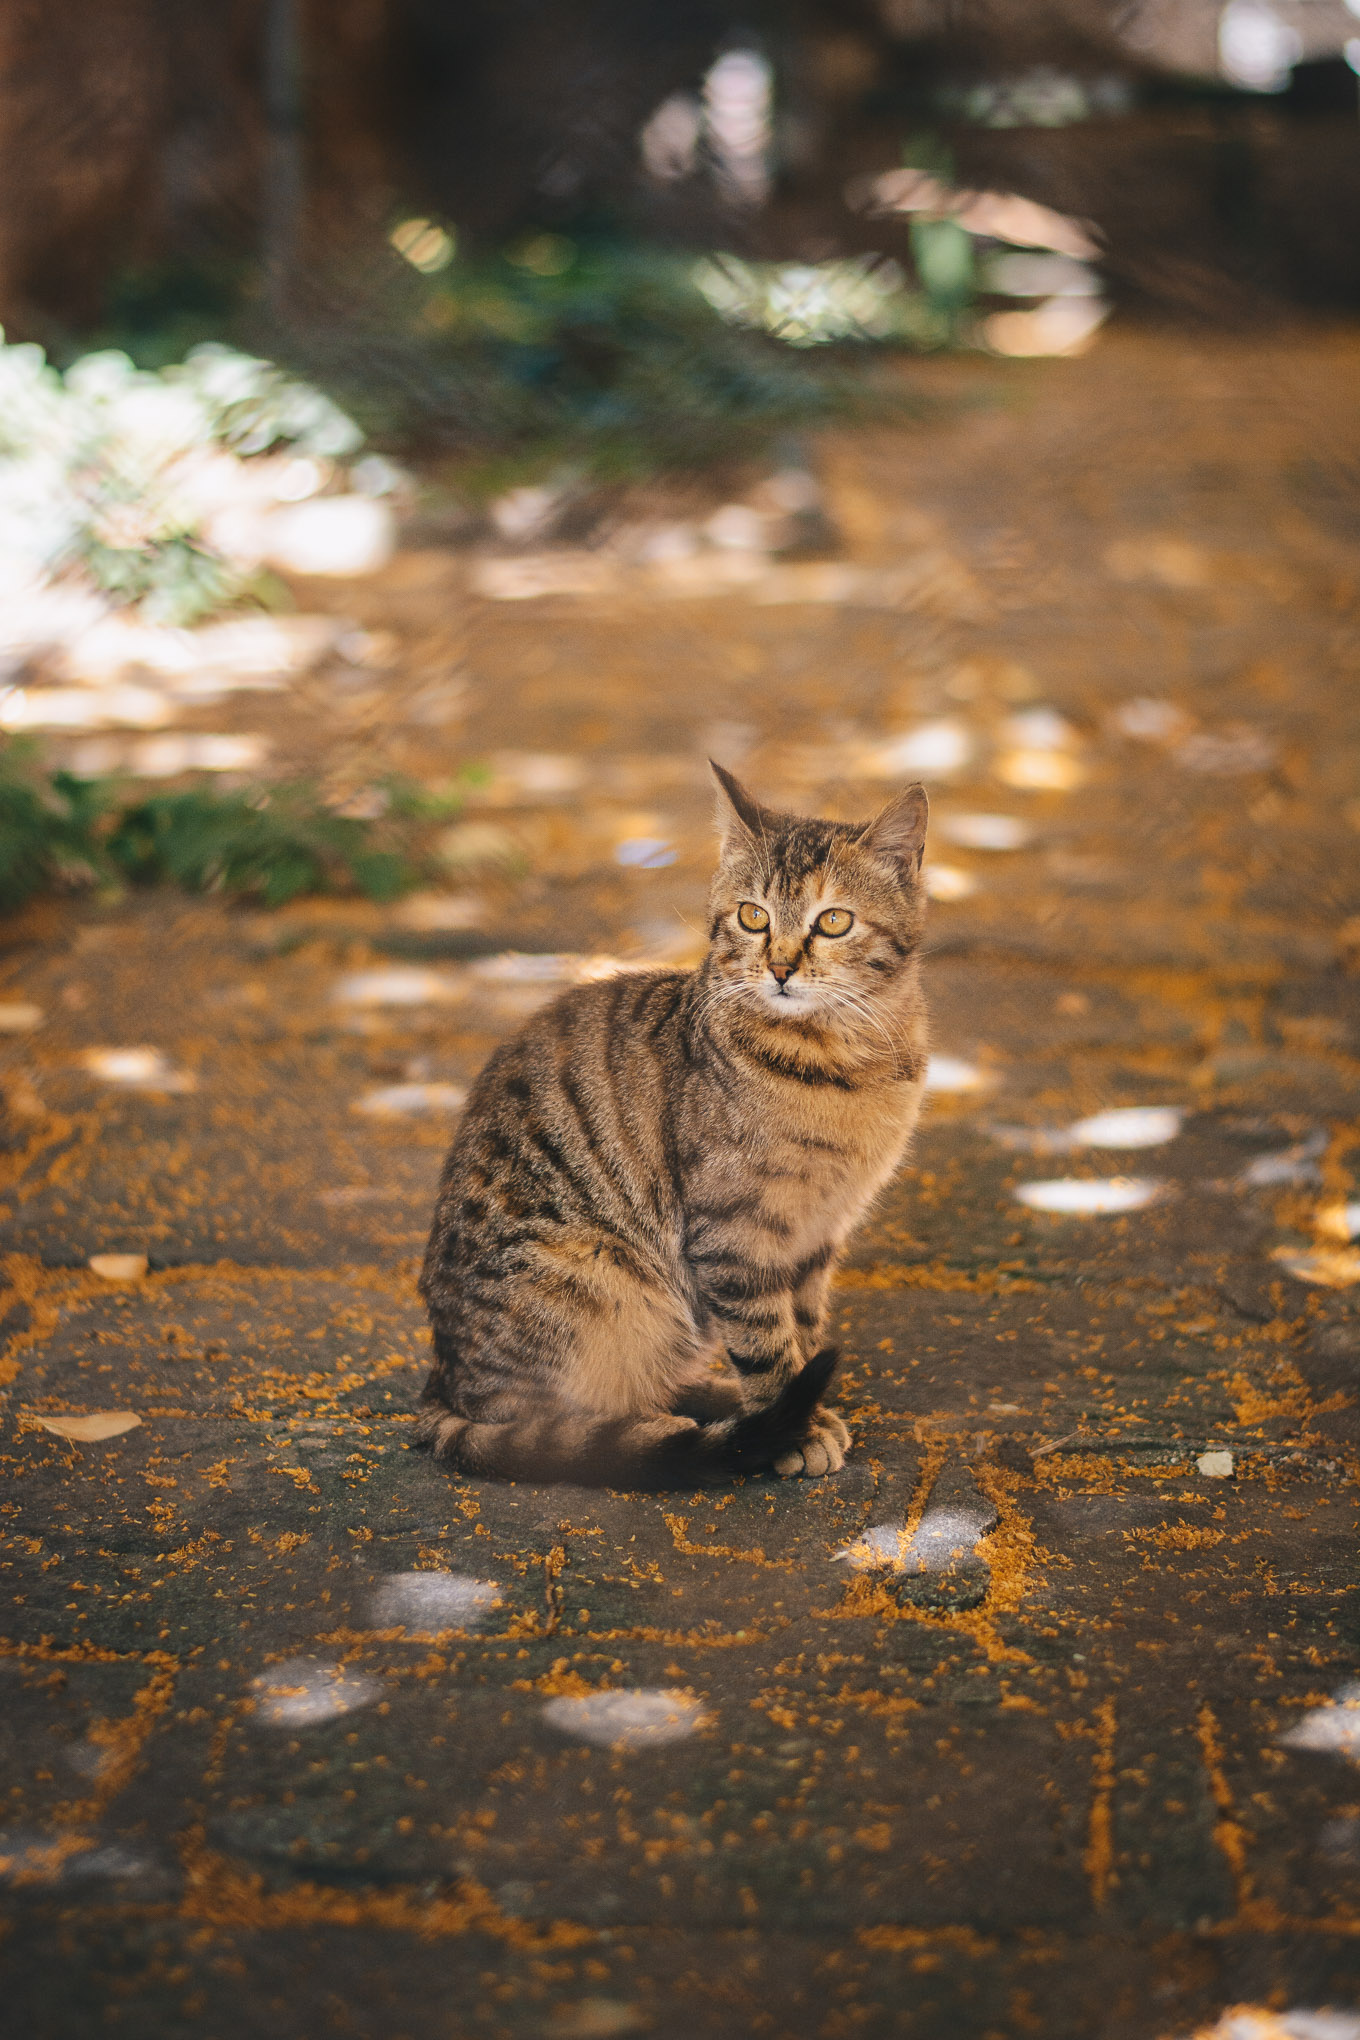 Cat in sofia